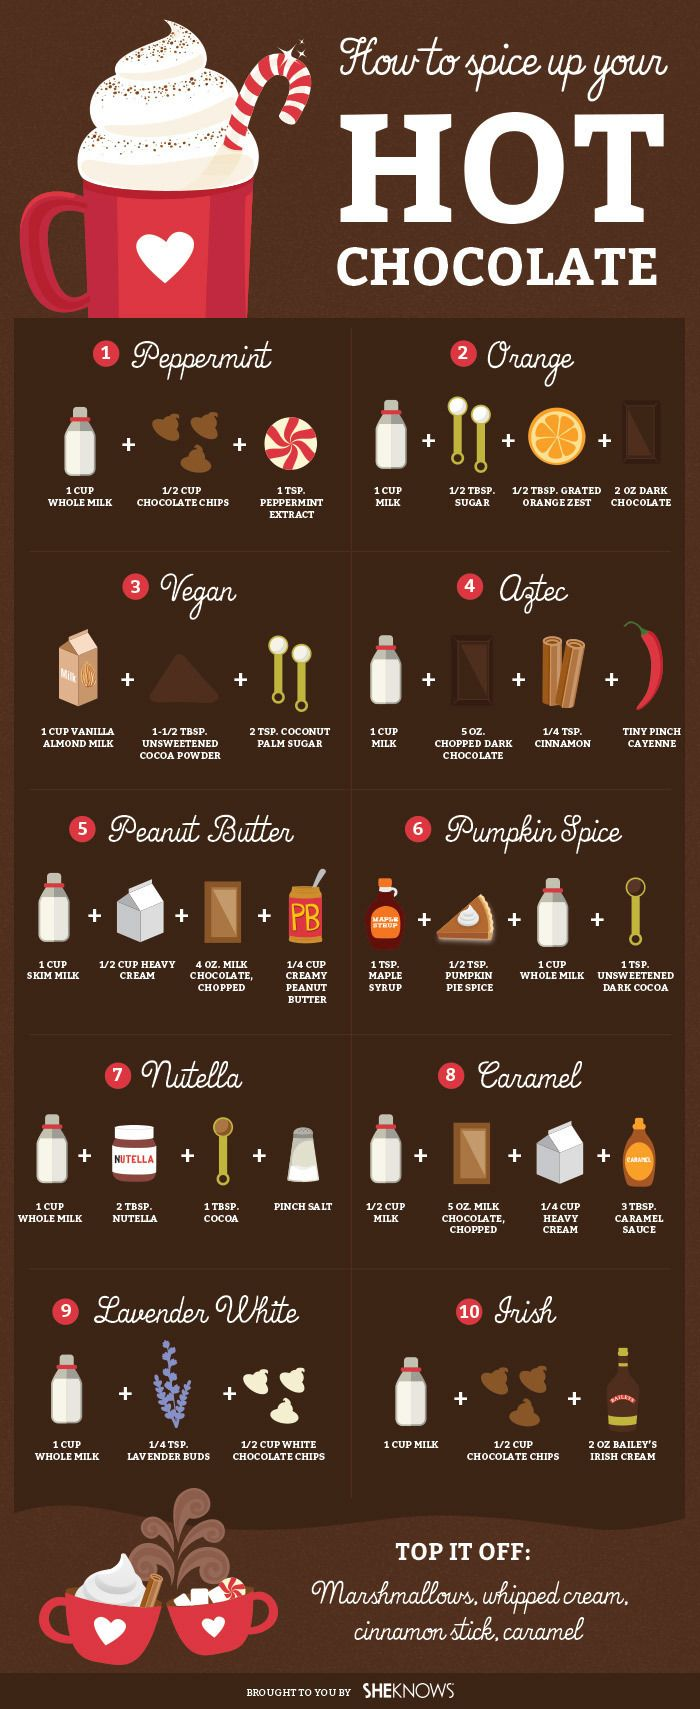 The Only Thing You Need To Know To Make The Perfect Hot Chocolate. - http://www.lifebuzz.com/hot-chocolate/